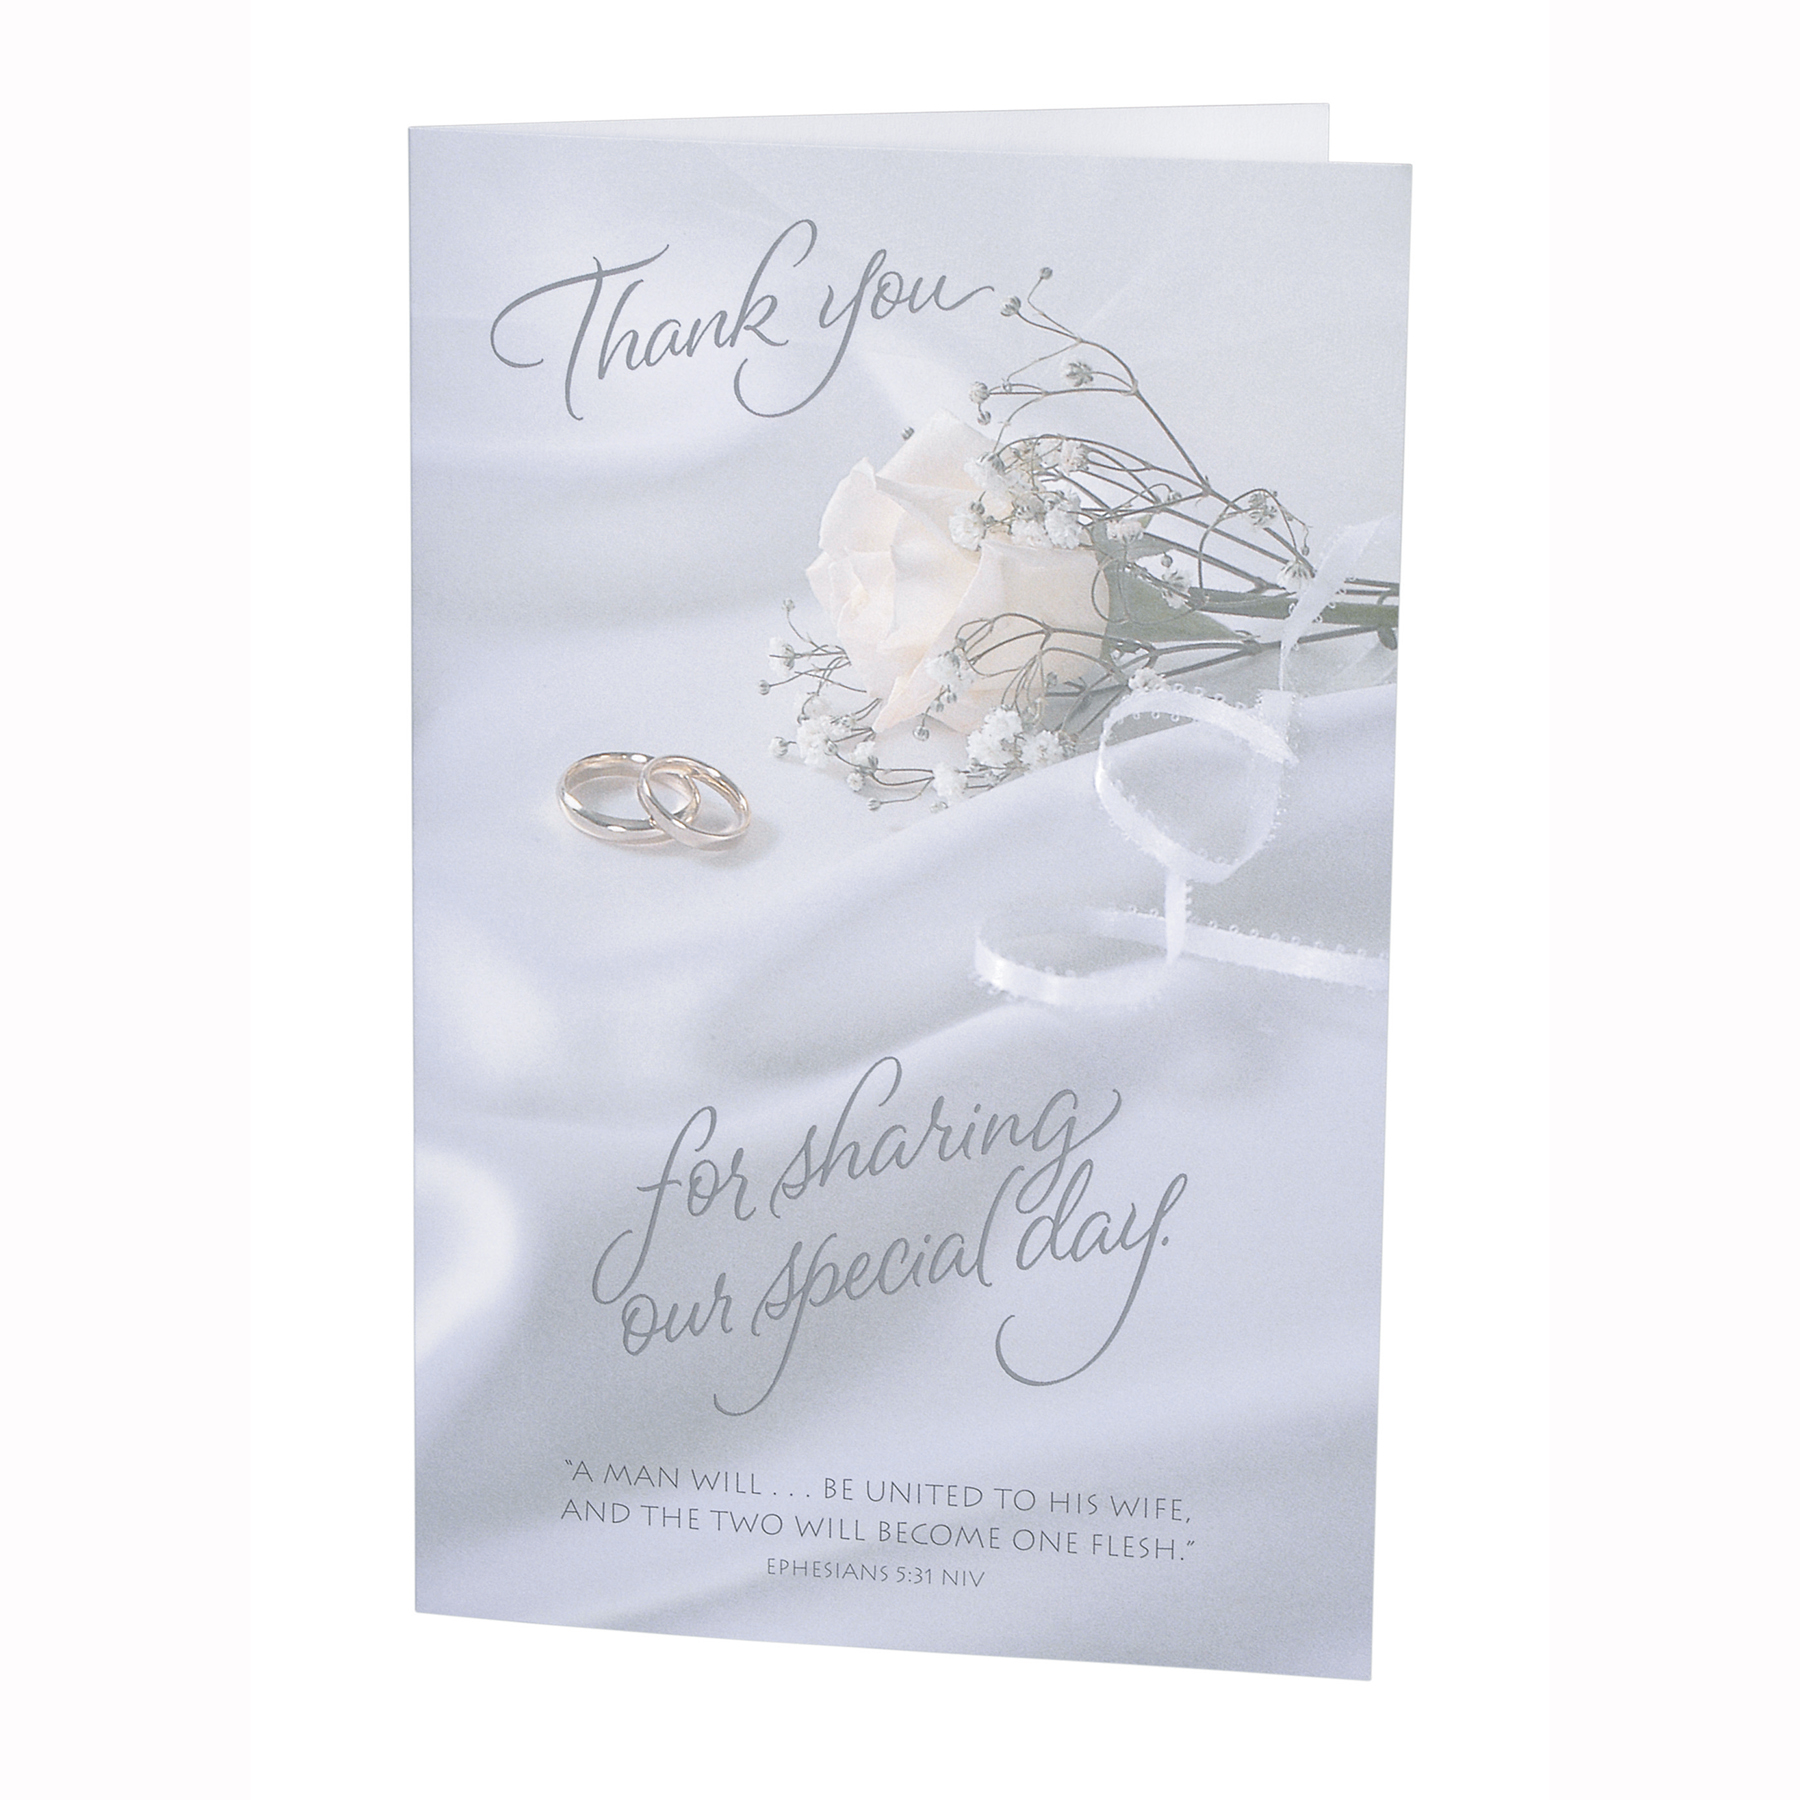 Victoria Lynn Wedding Programs, Thank You For Sharing Our Special Day